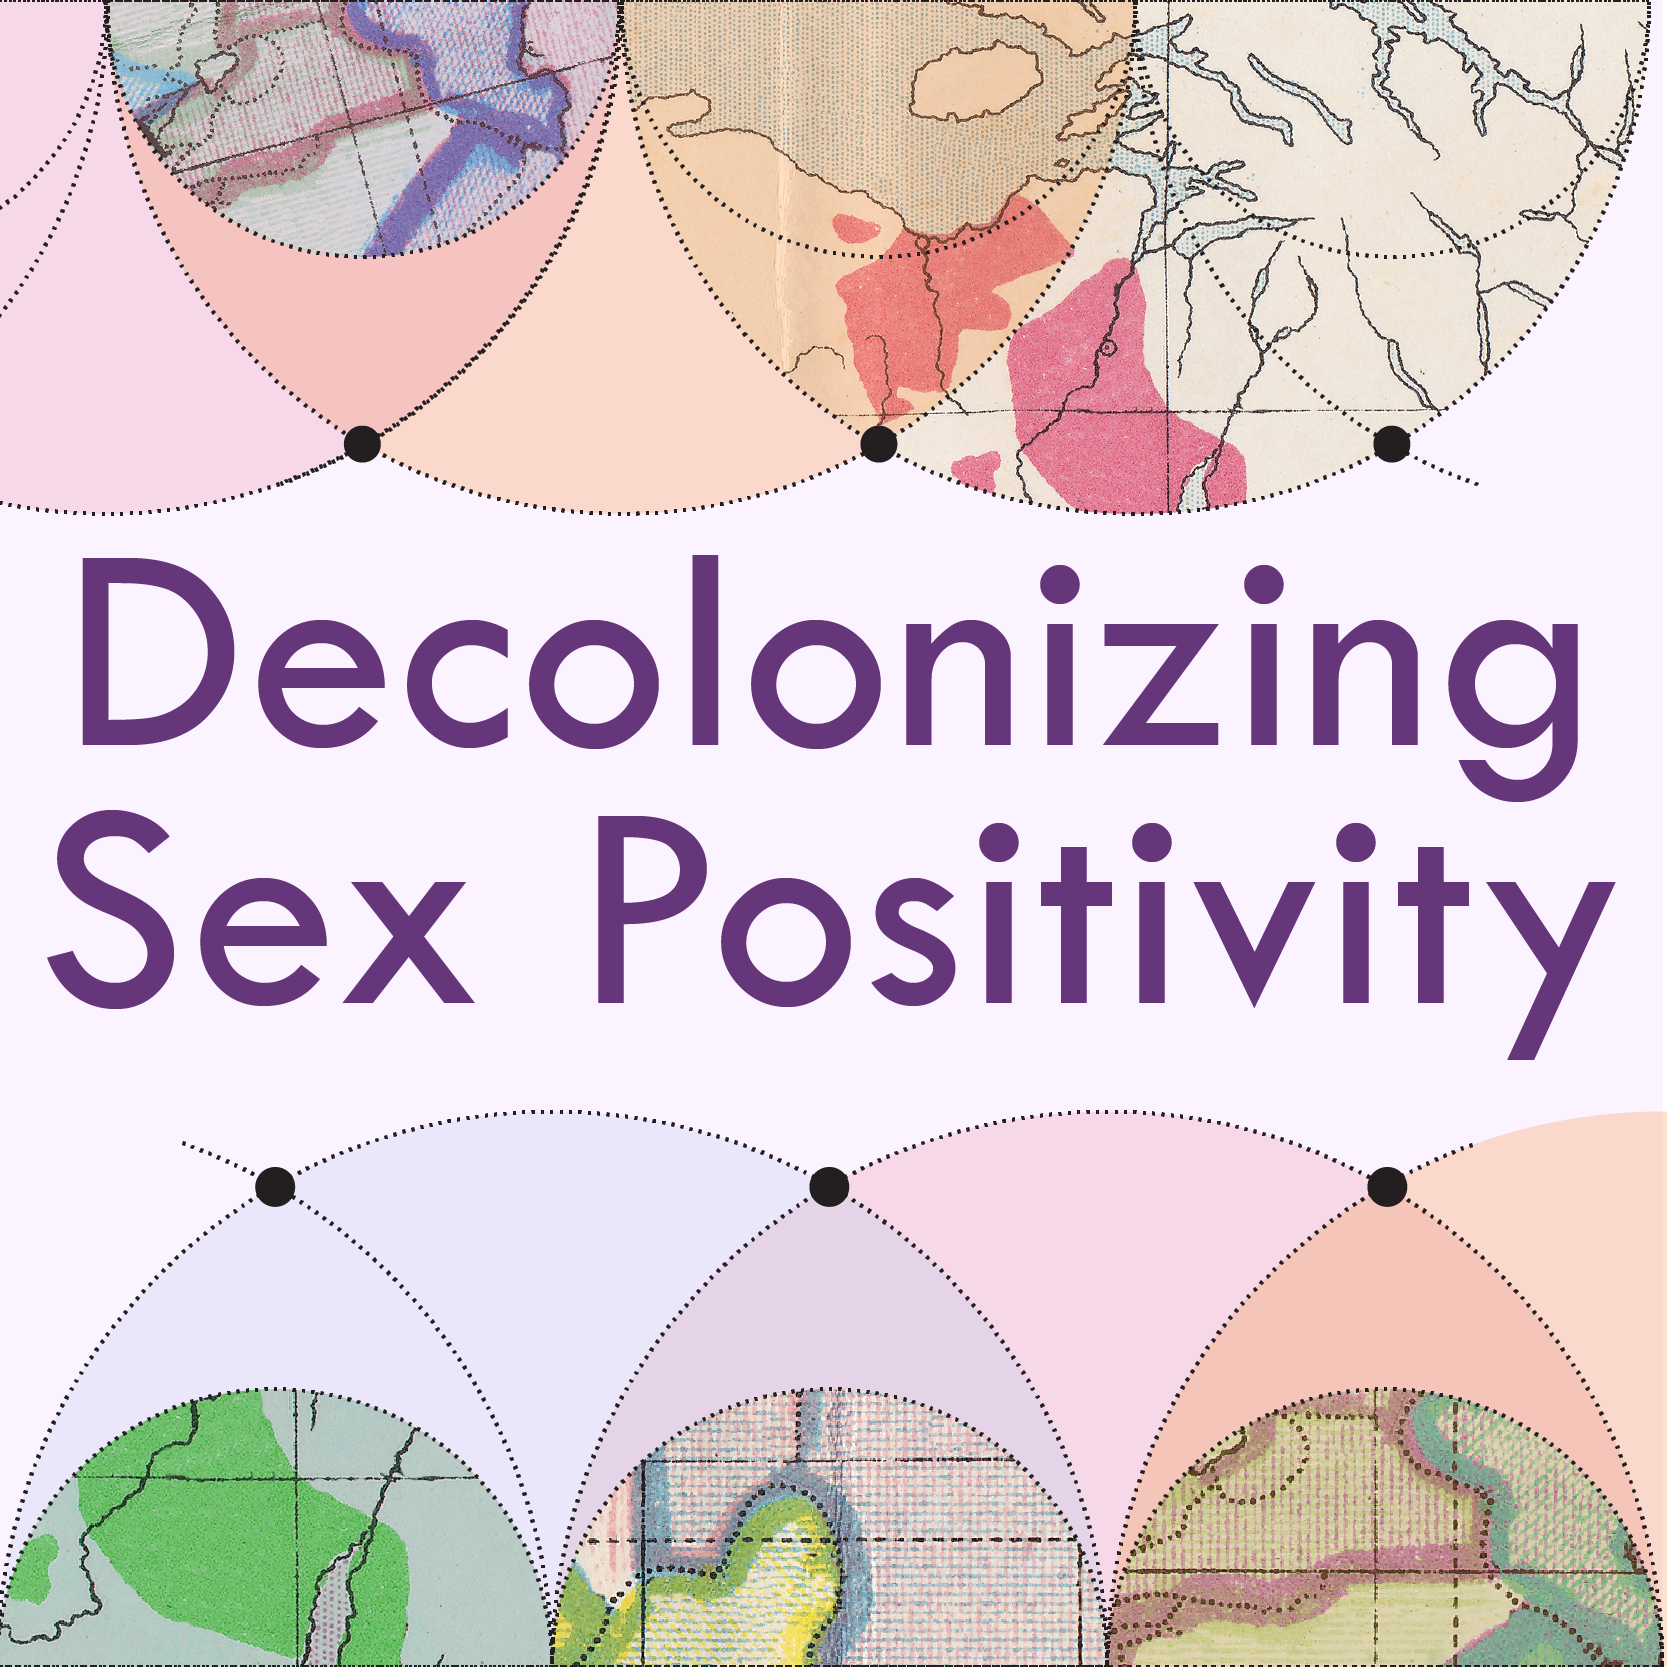 Decolonizing Sex Positivity